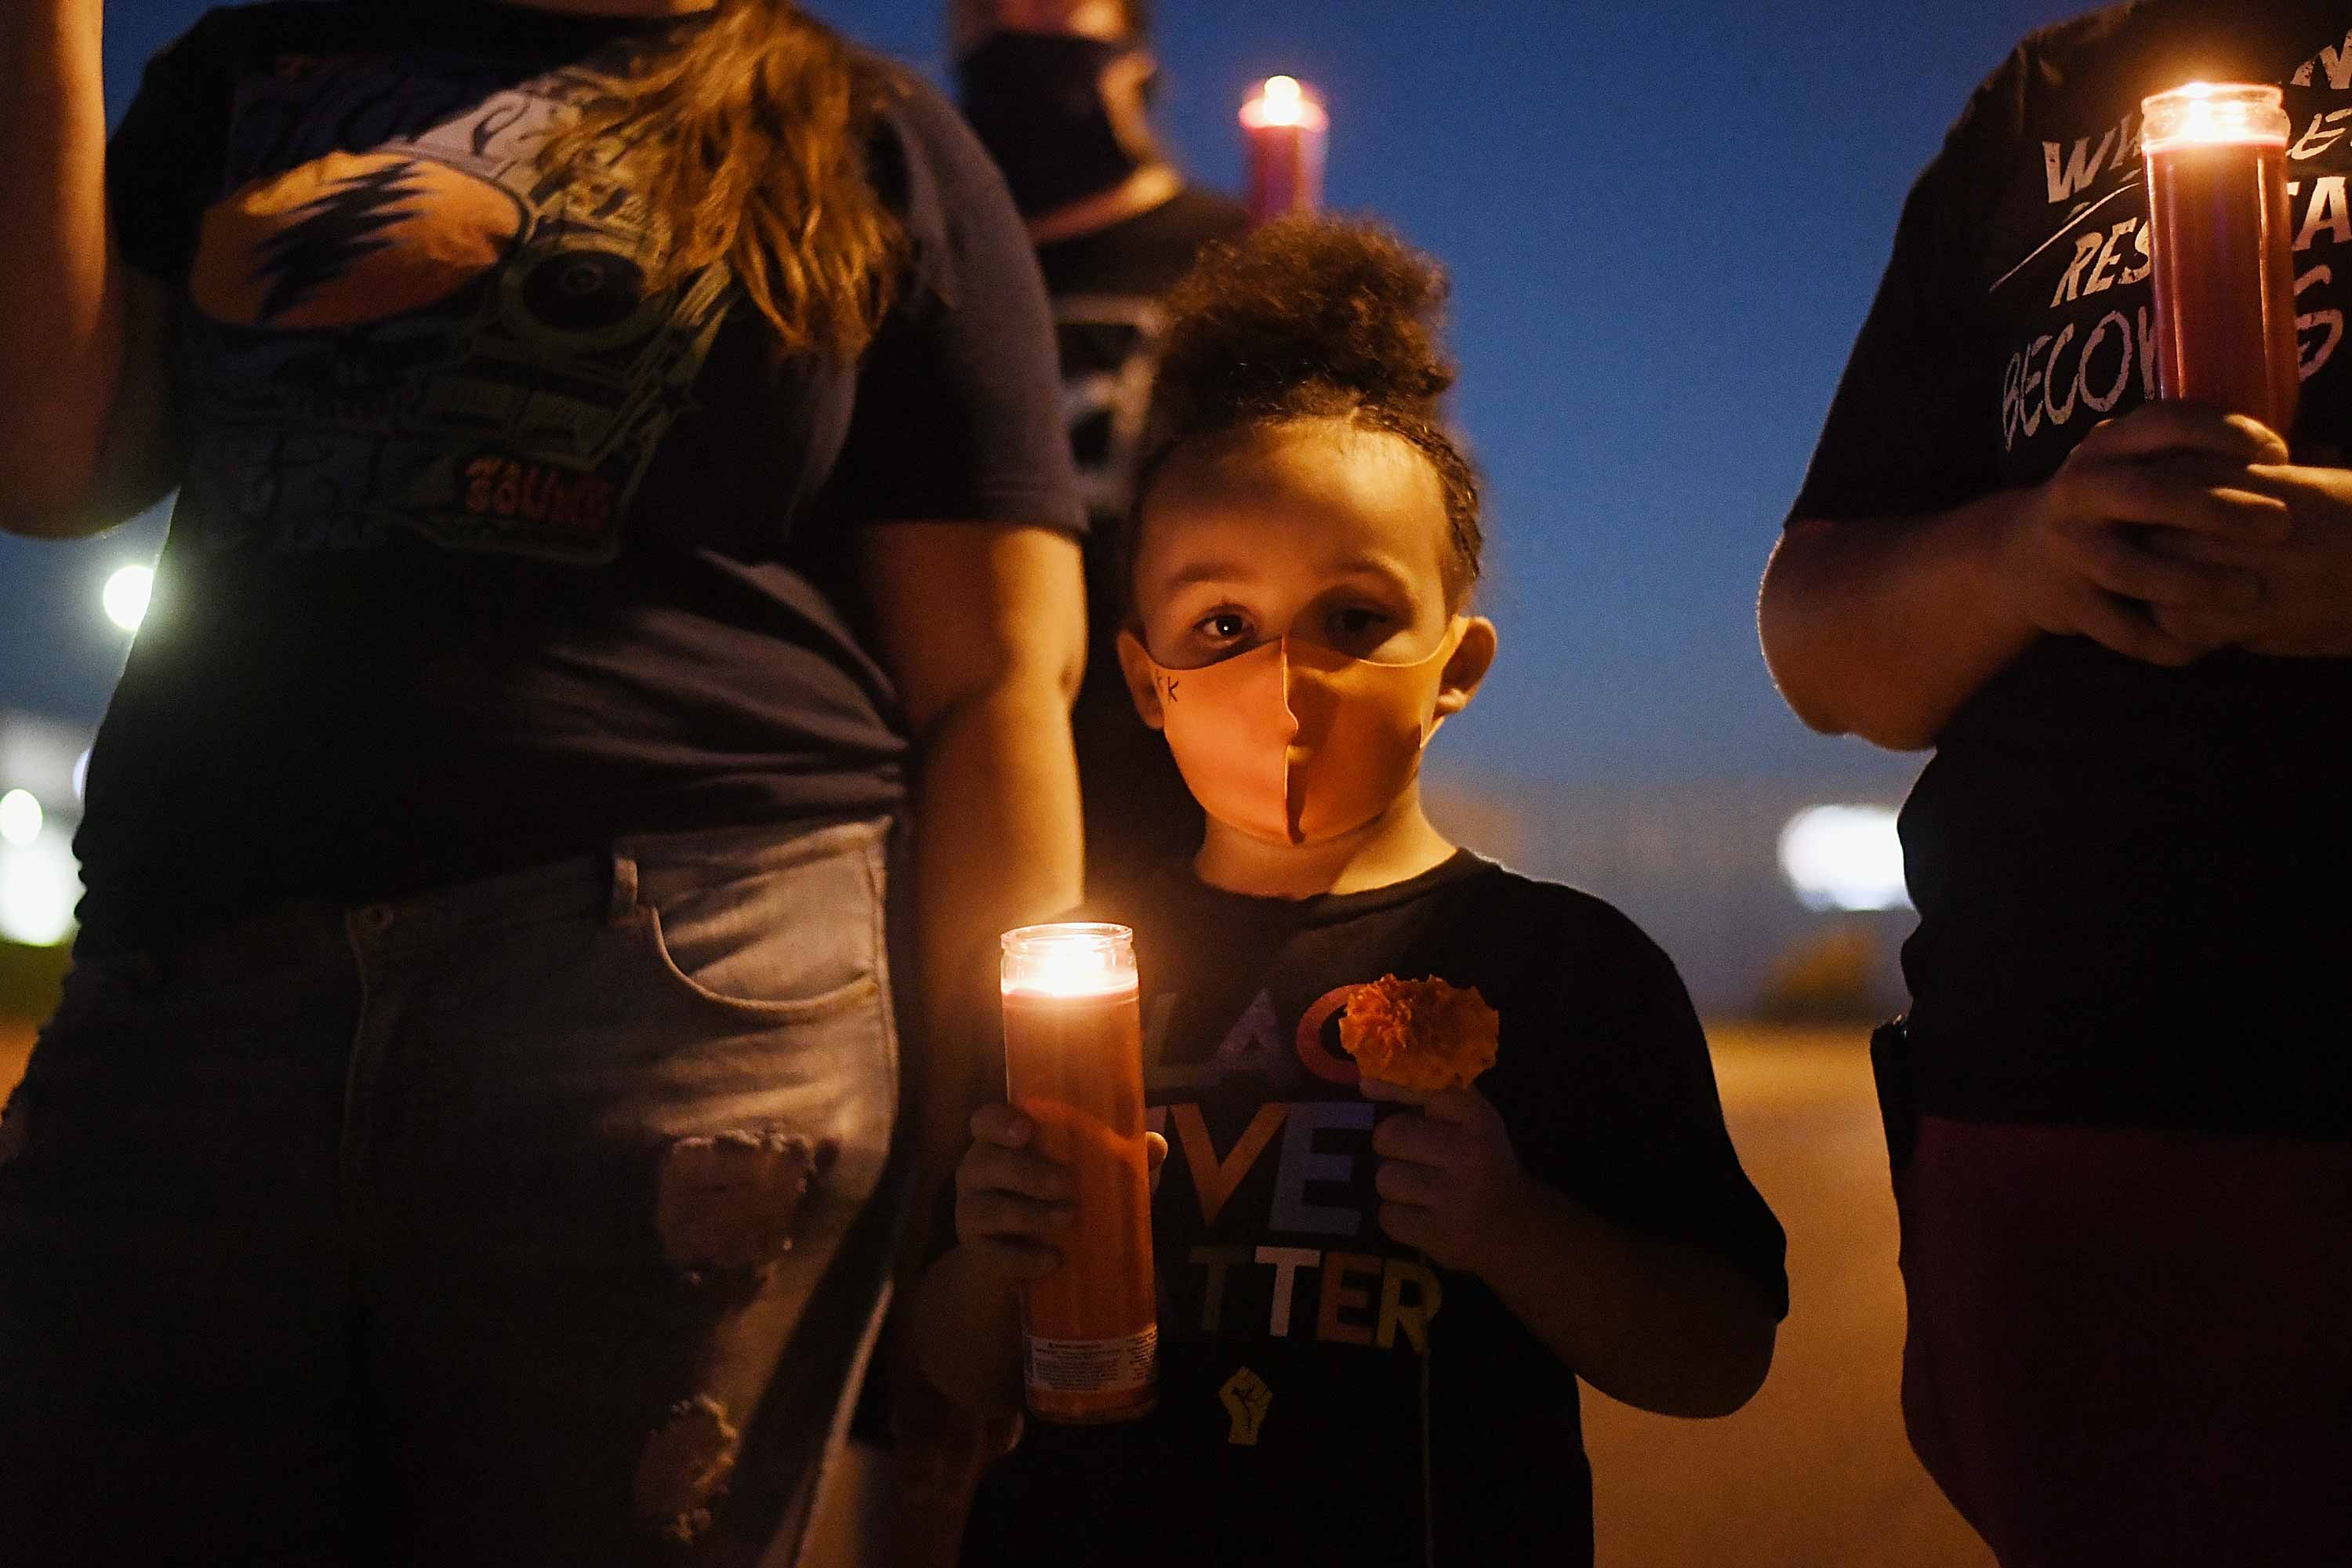 A young Black girl wearing a protective mask holds a candle in her hand while surrounded by adults.